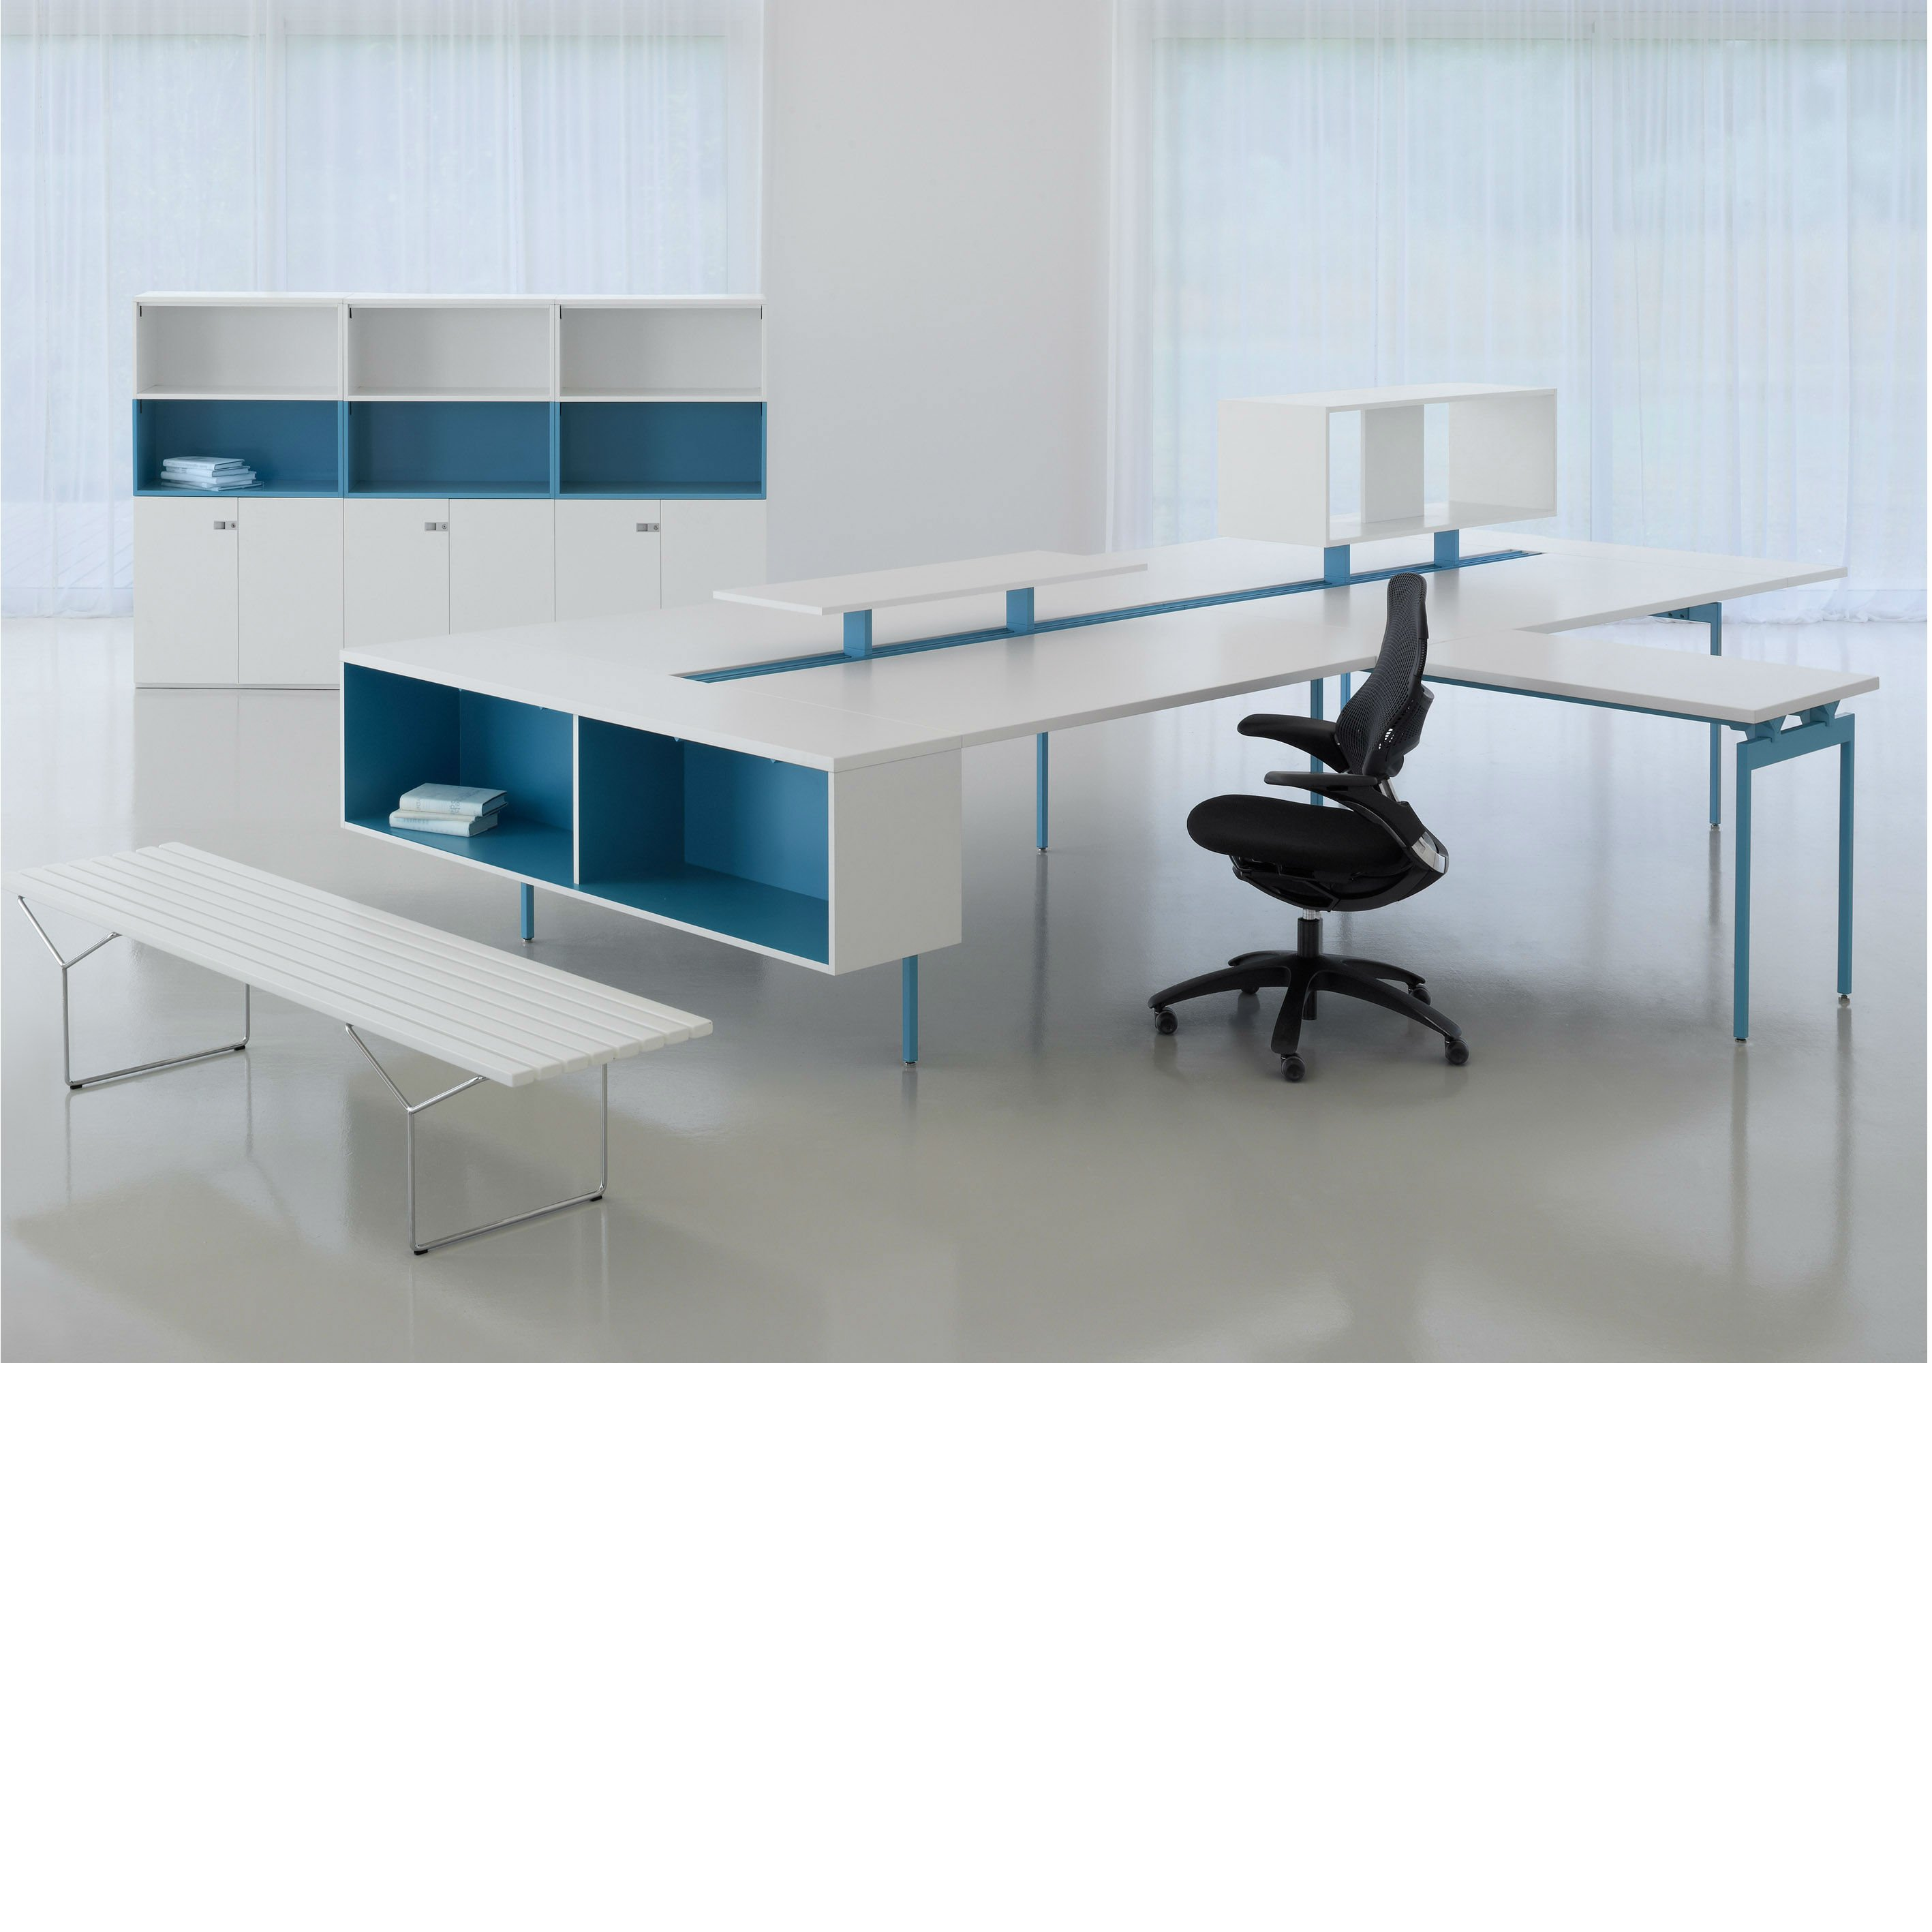 Antenna_workspaces_knoll